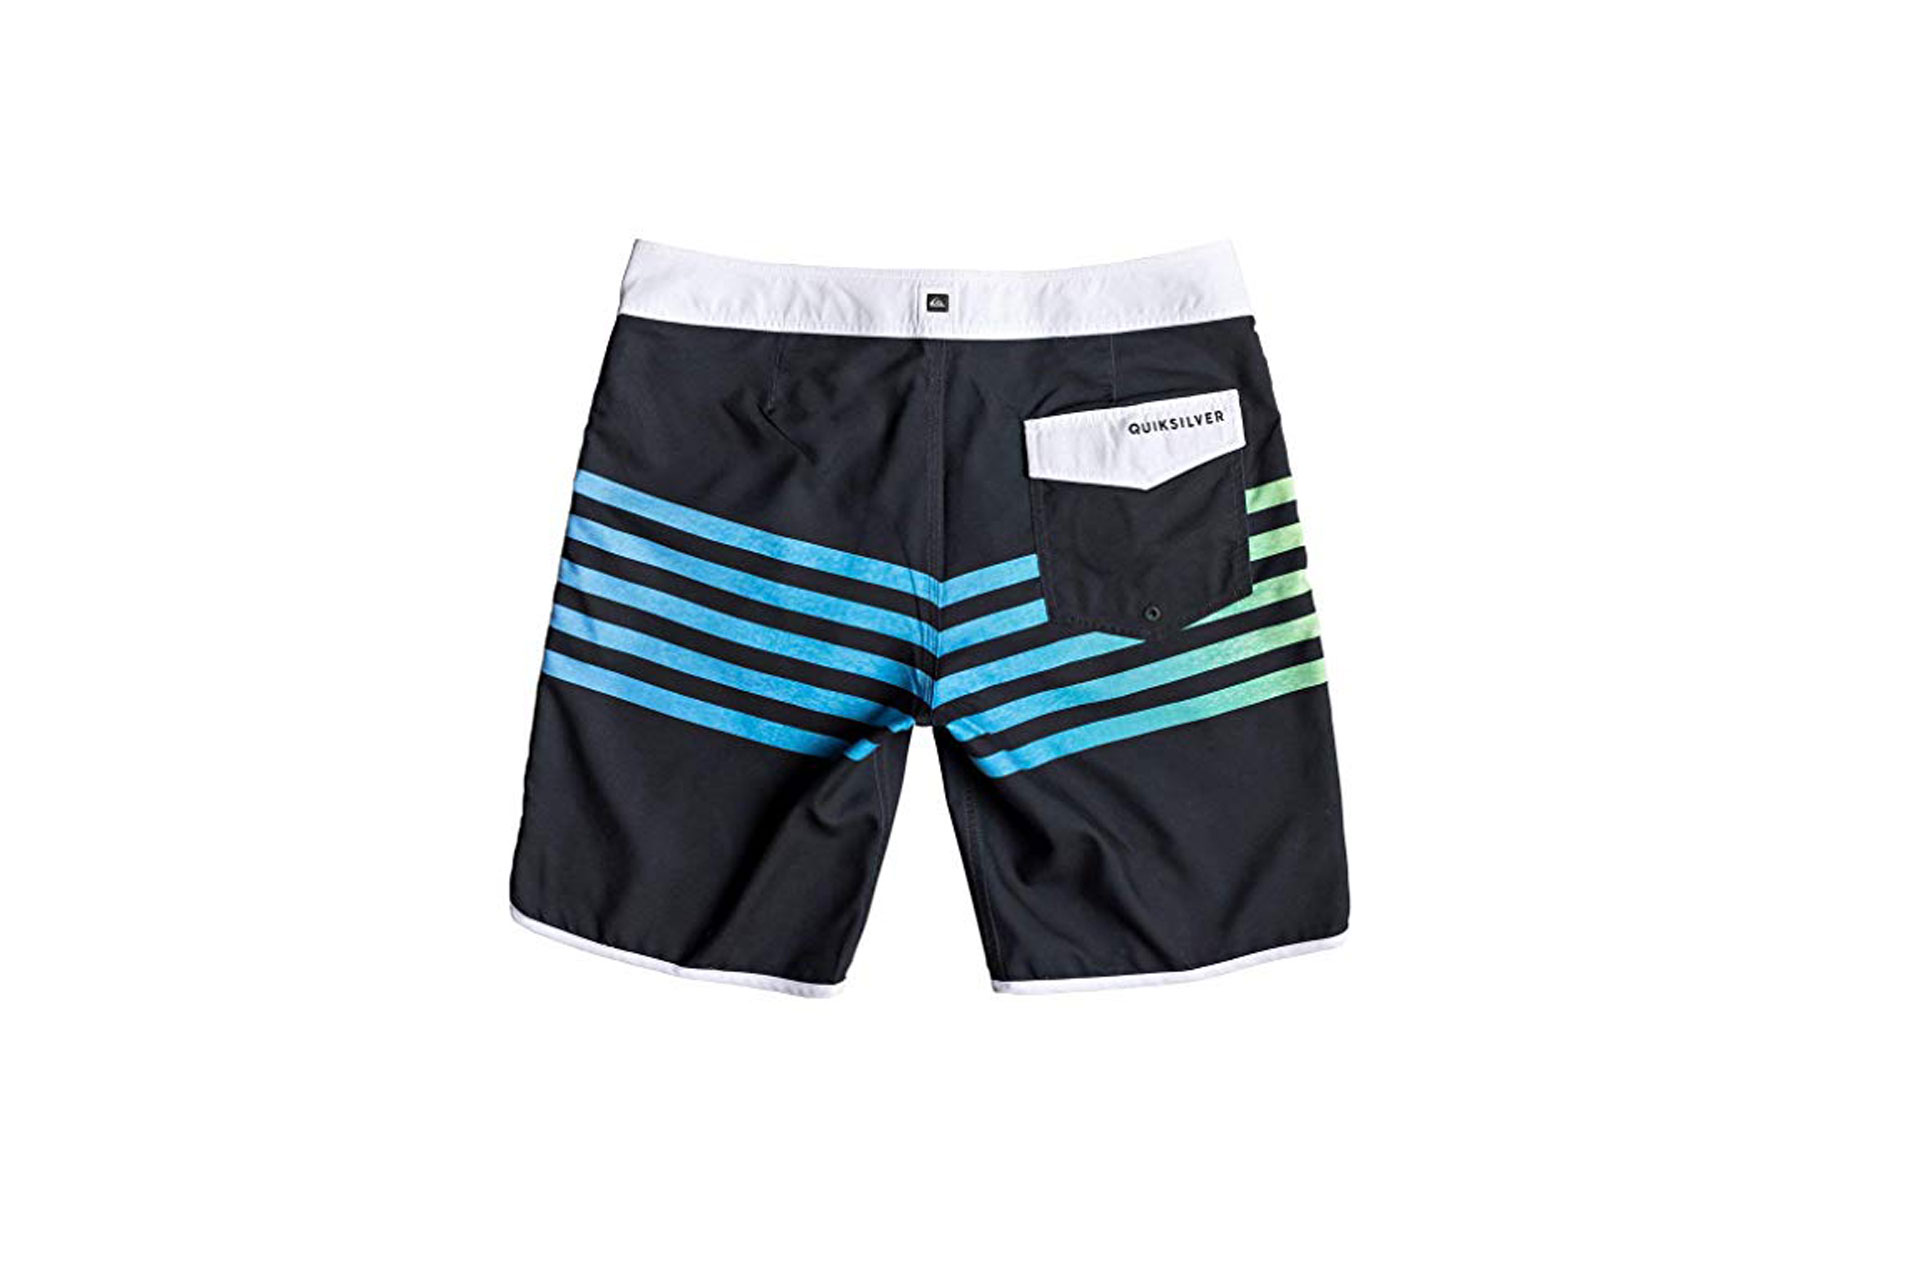 Quiksilver Mens Bathing Suit; Courtesy of Amazon